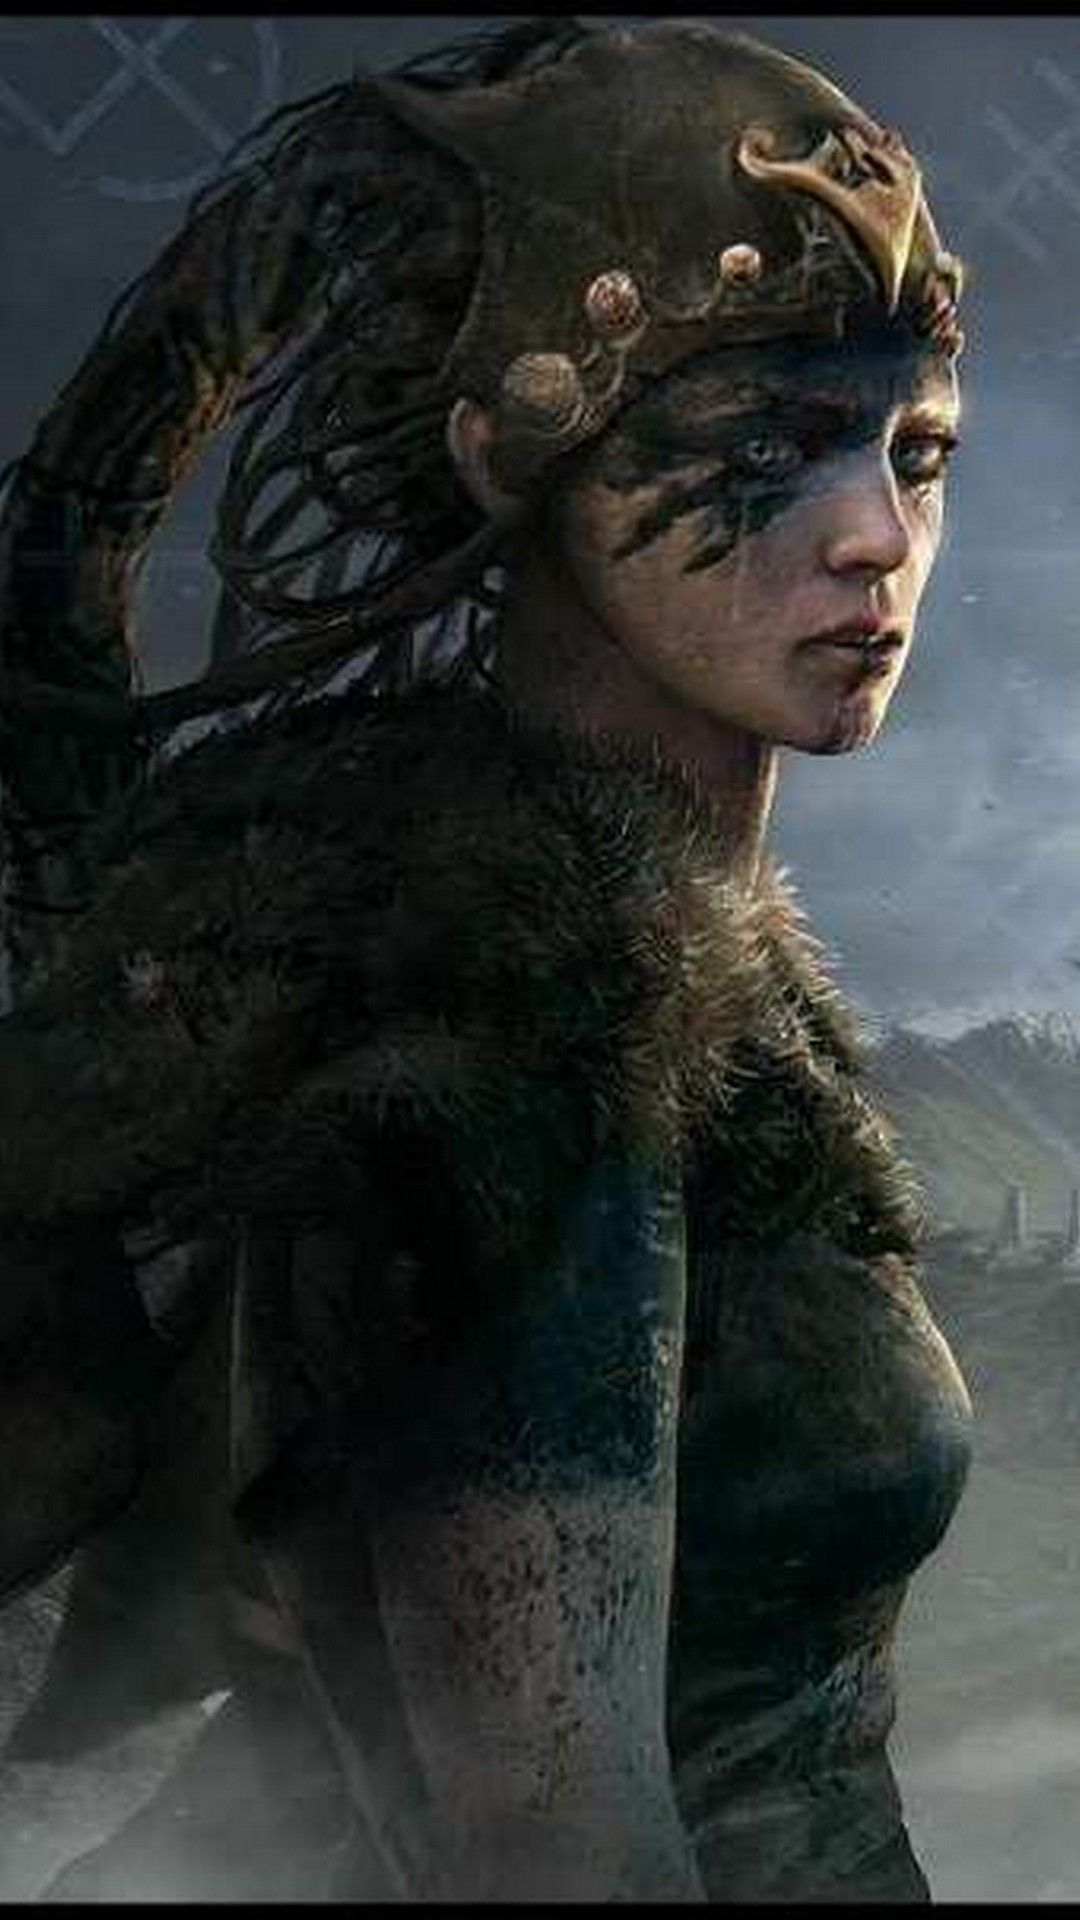 Hellblade Senuas Sacrifice Wallpaper For Iphone X Iphone